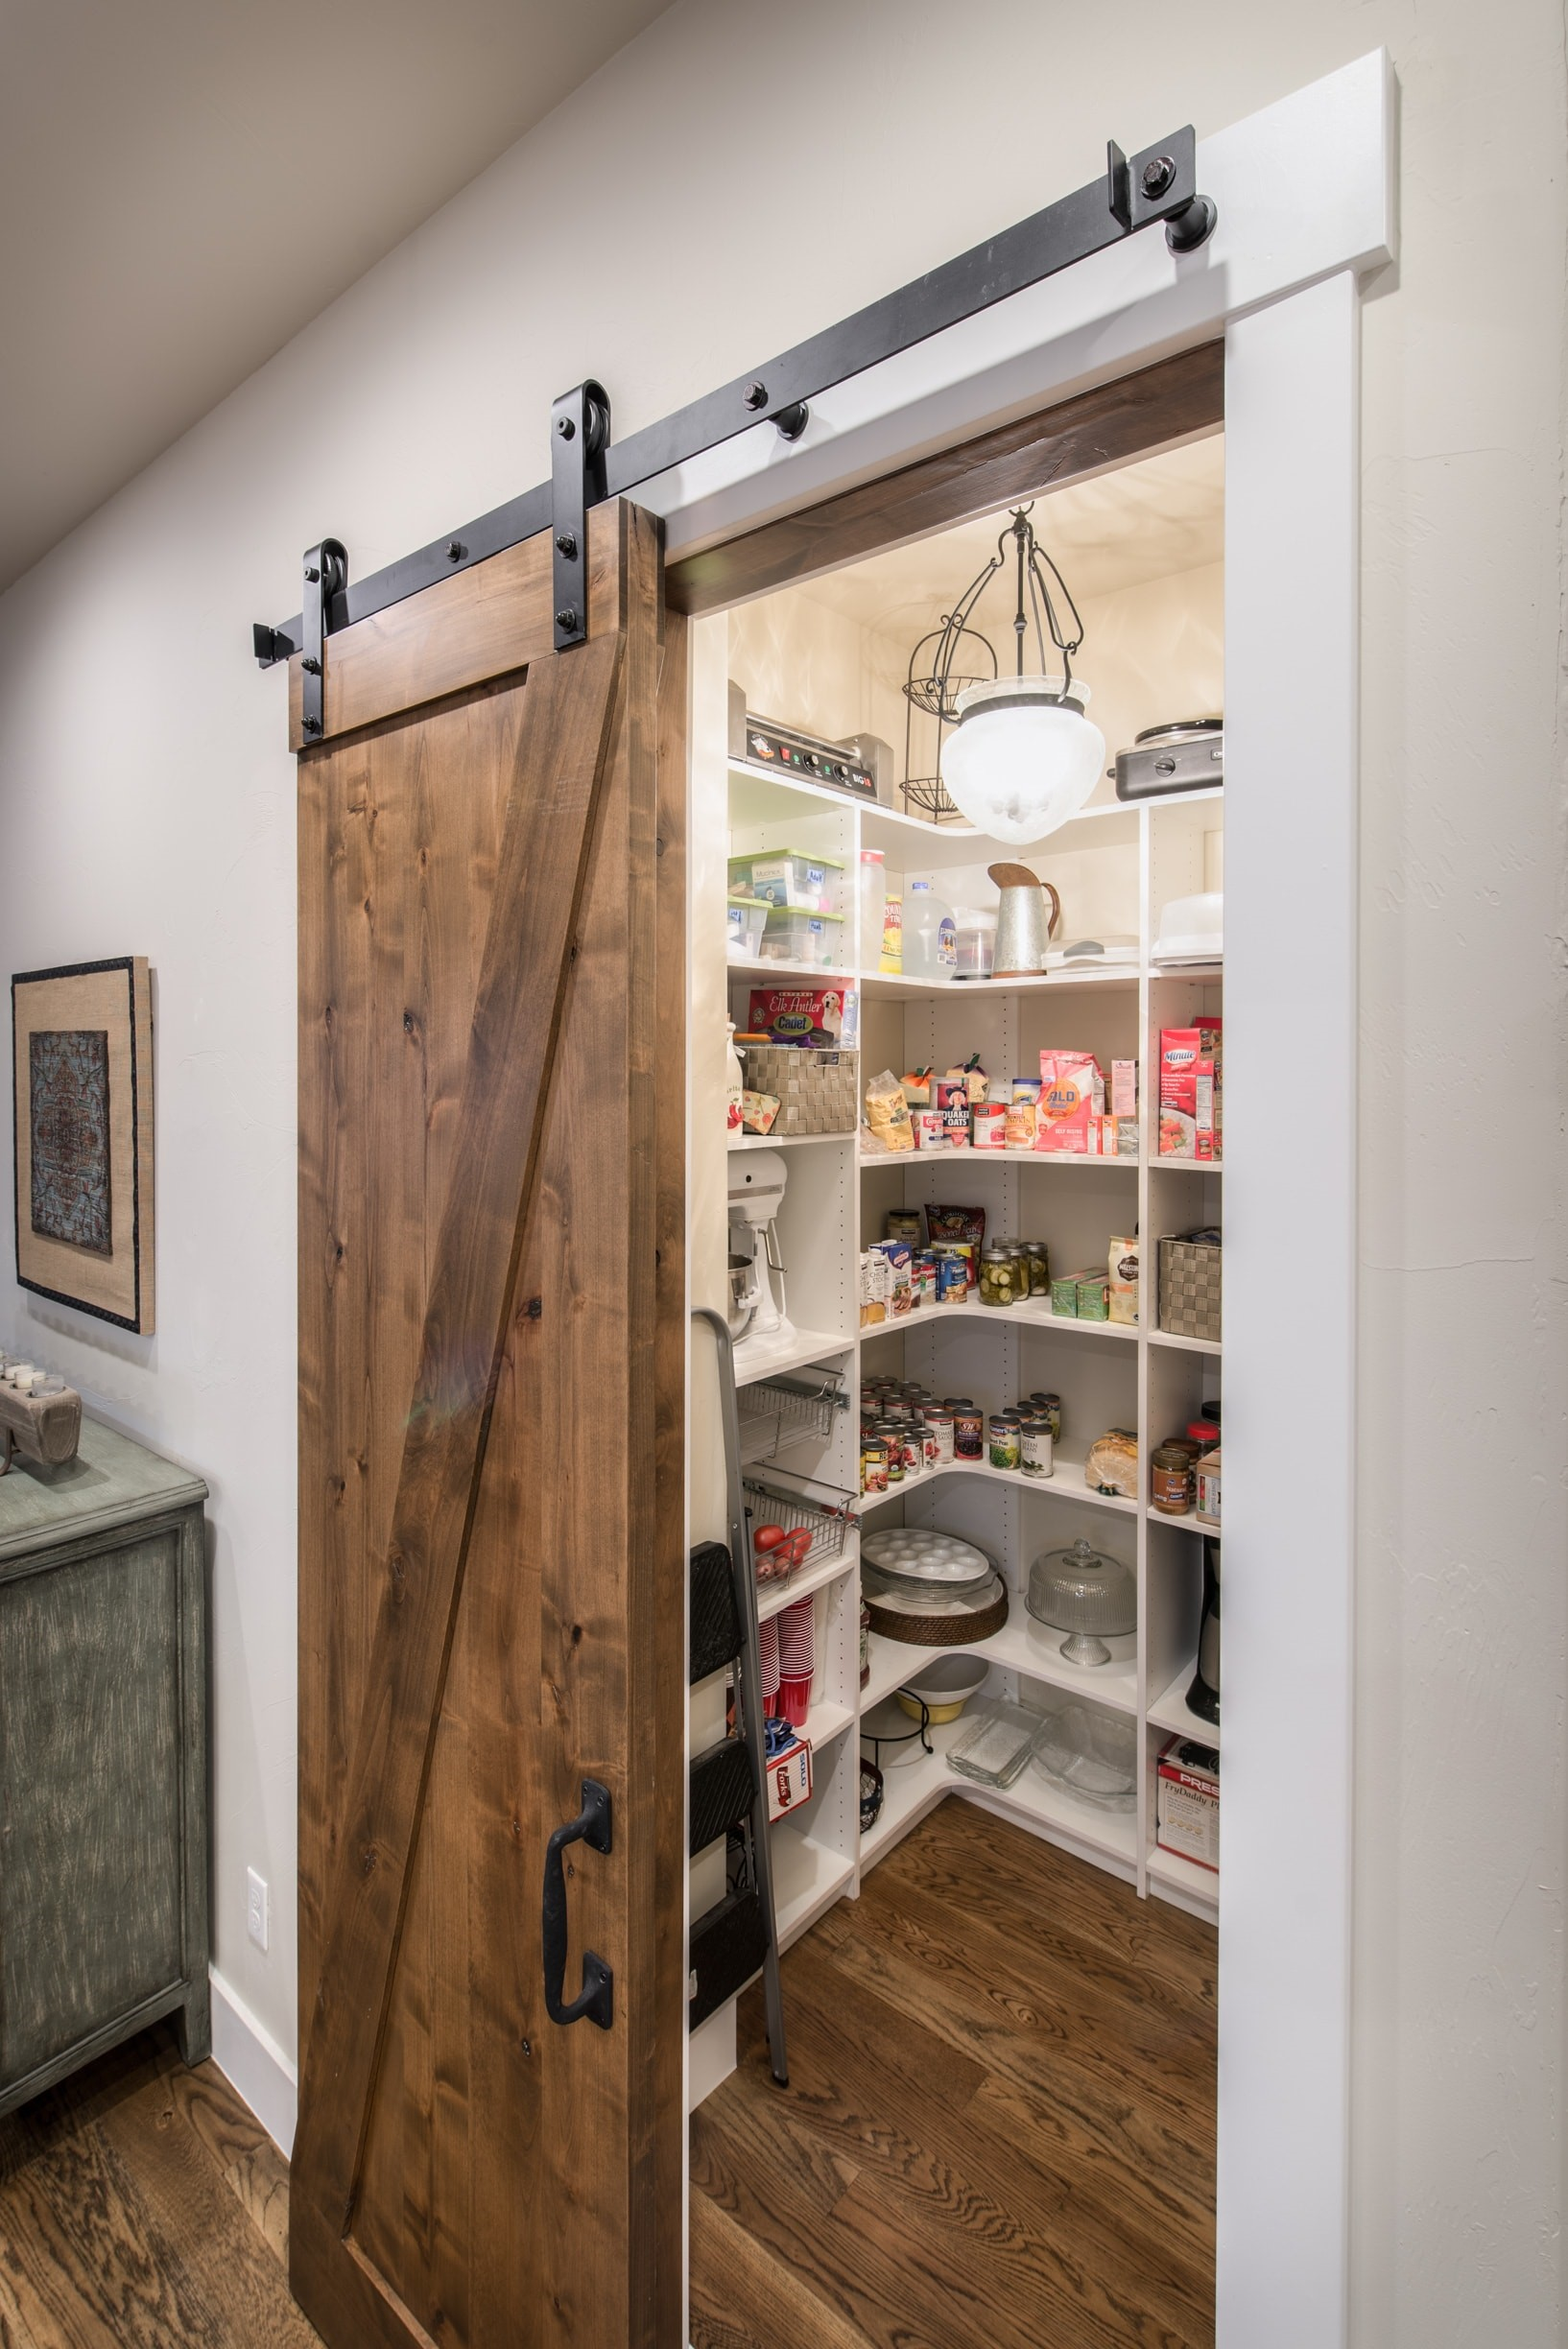 Sliding wooden barn door reveals a walk-in kitchen pantry in house plan #161-1072